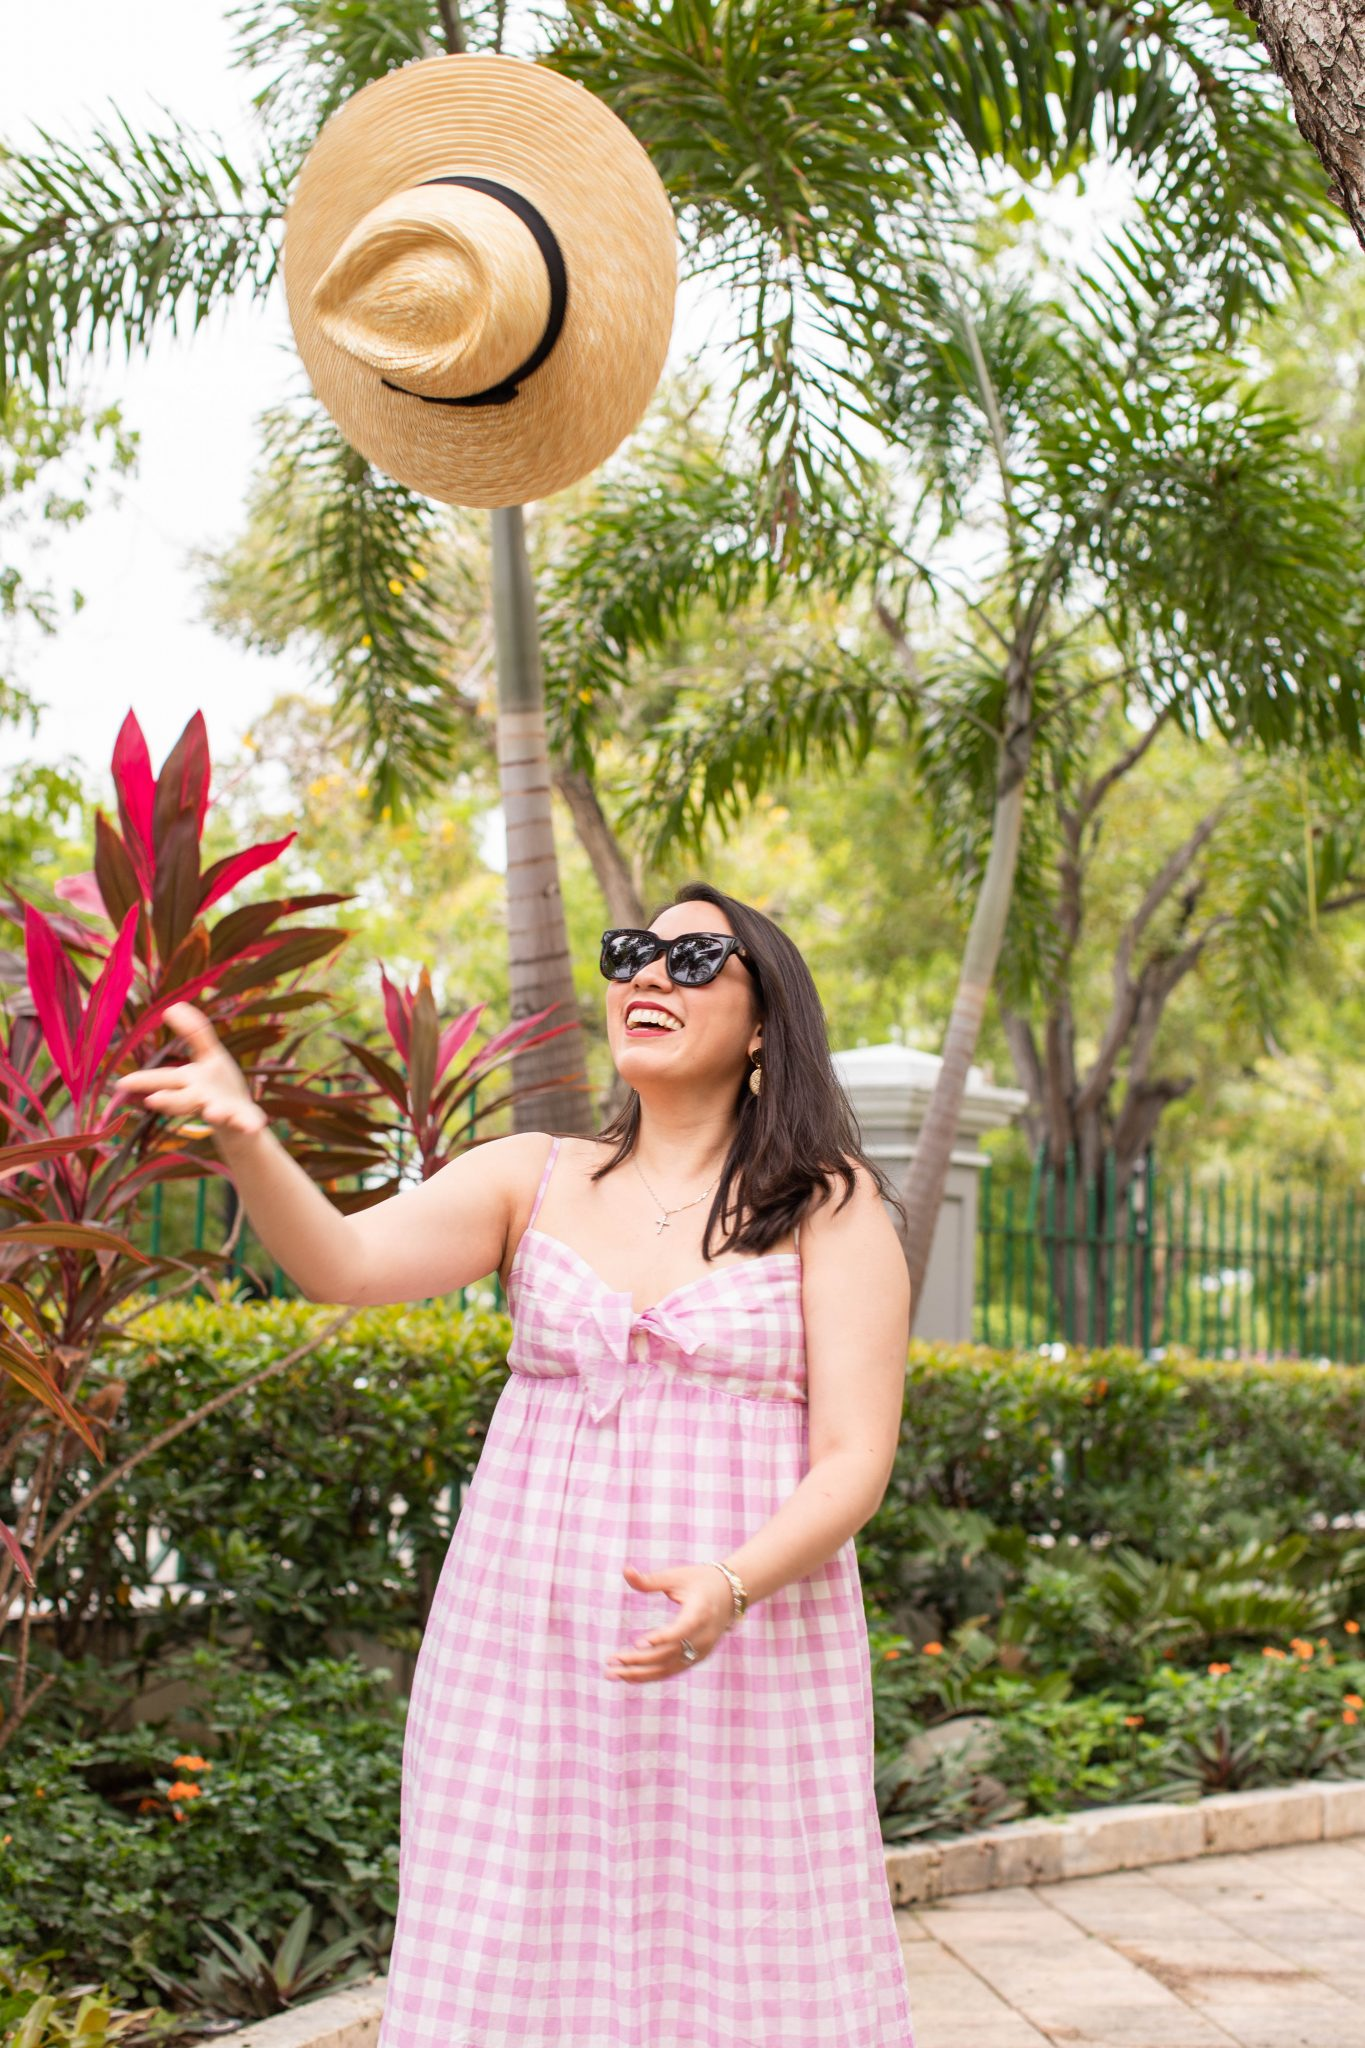 How to Grow Your Blog: What I Invest In & Is It Worth It? by popular New York life and style blog, Live Laugh Linda: image of a woman standing outside by some tropical plants and wearing a Beach dress with tie-front in oversized gingham, Saks Fifth Avenue Gentle Monster sunglasses, Nordstrom Brixton Joanna hat, and Tory Burch Miller Flip Flop.